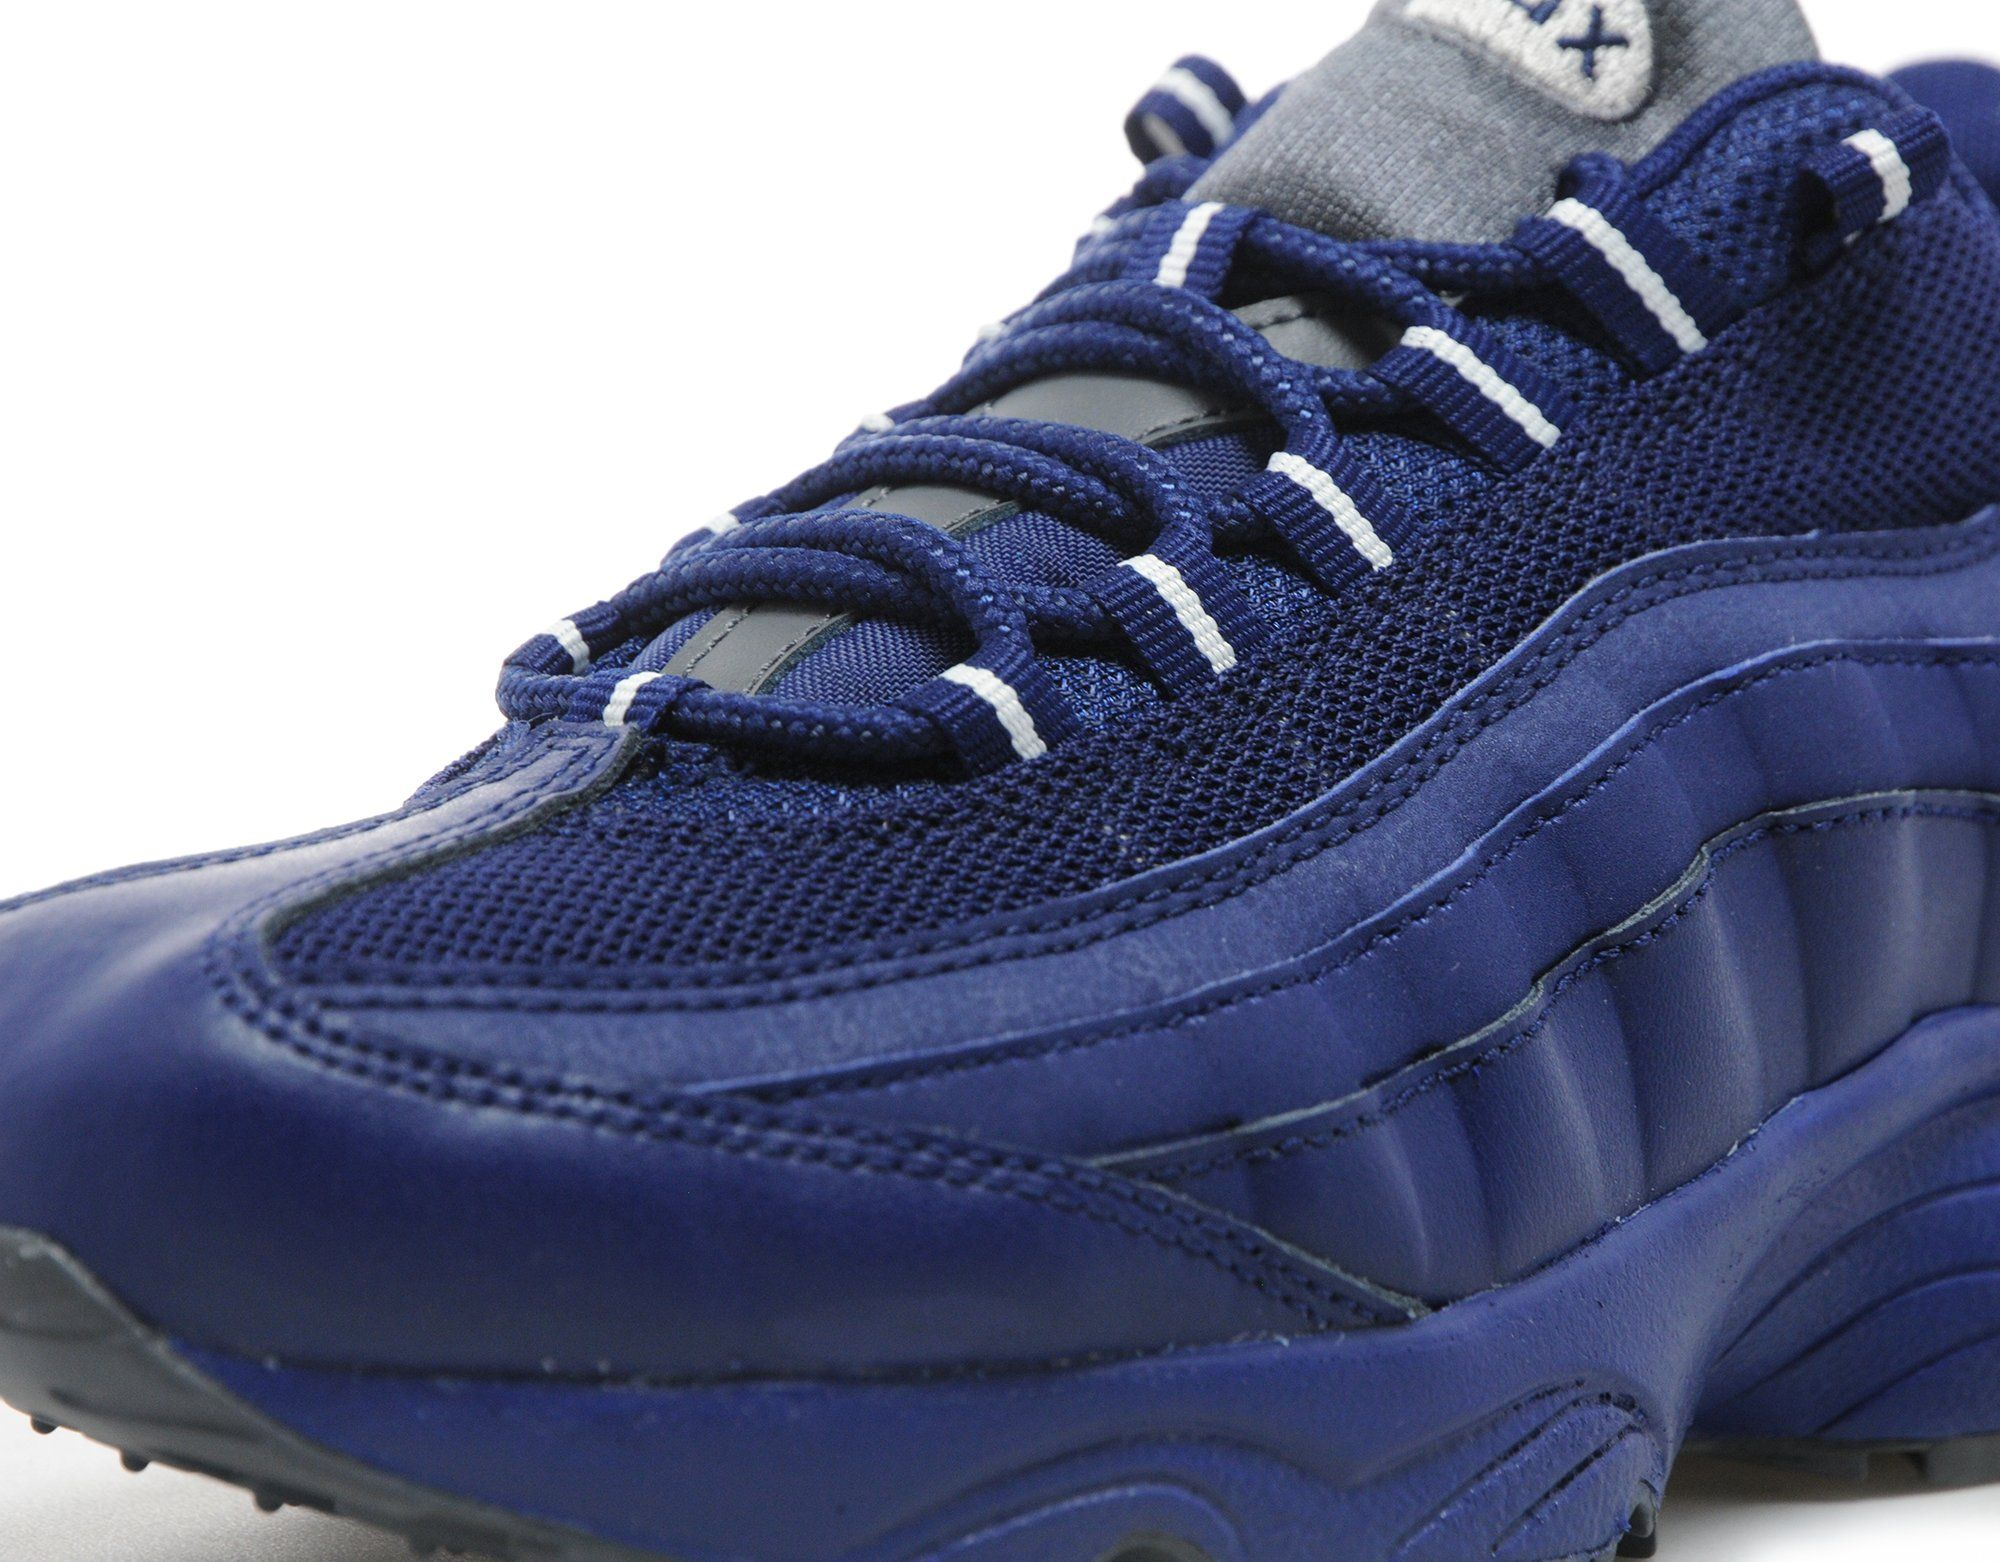 mfckw Nike Air Max 95 Junior | JD Sports